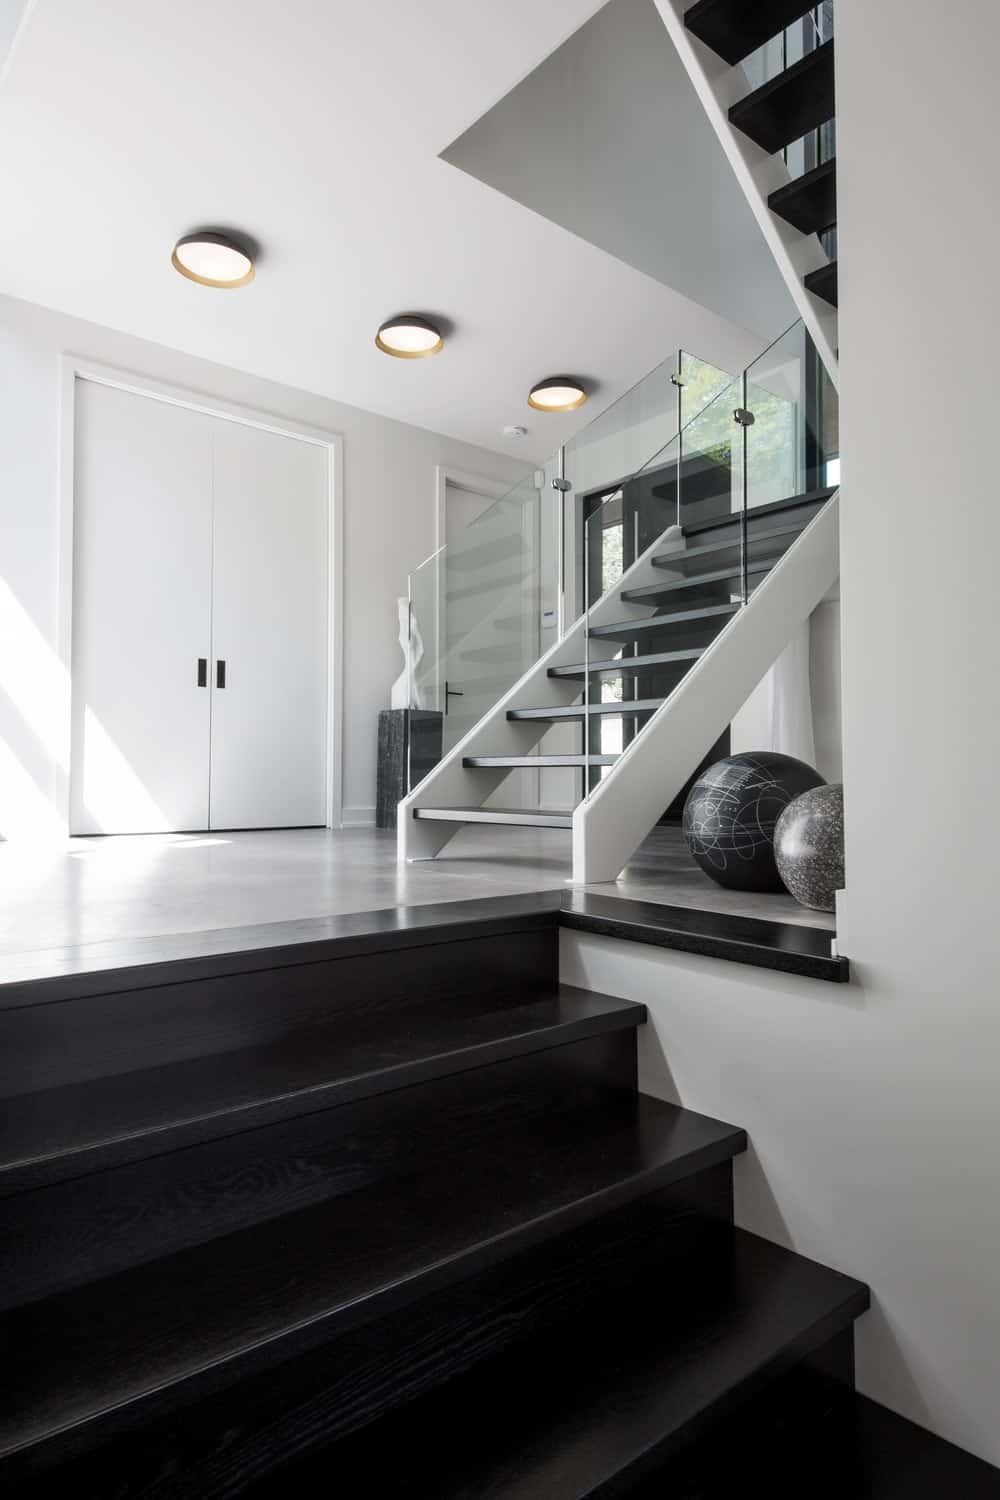 Modern style staircase with white walls surrounding the area. Photo credit: Steve Montpetit